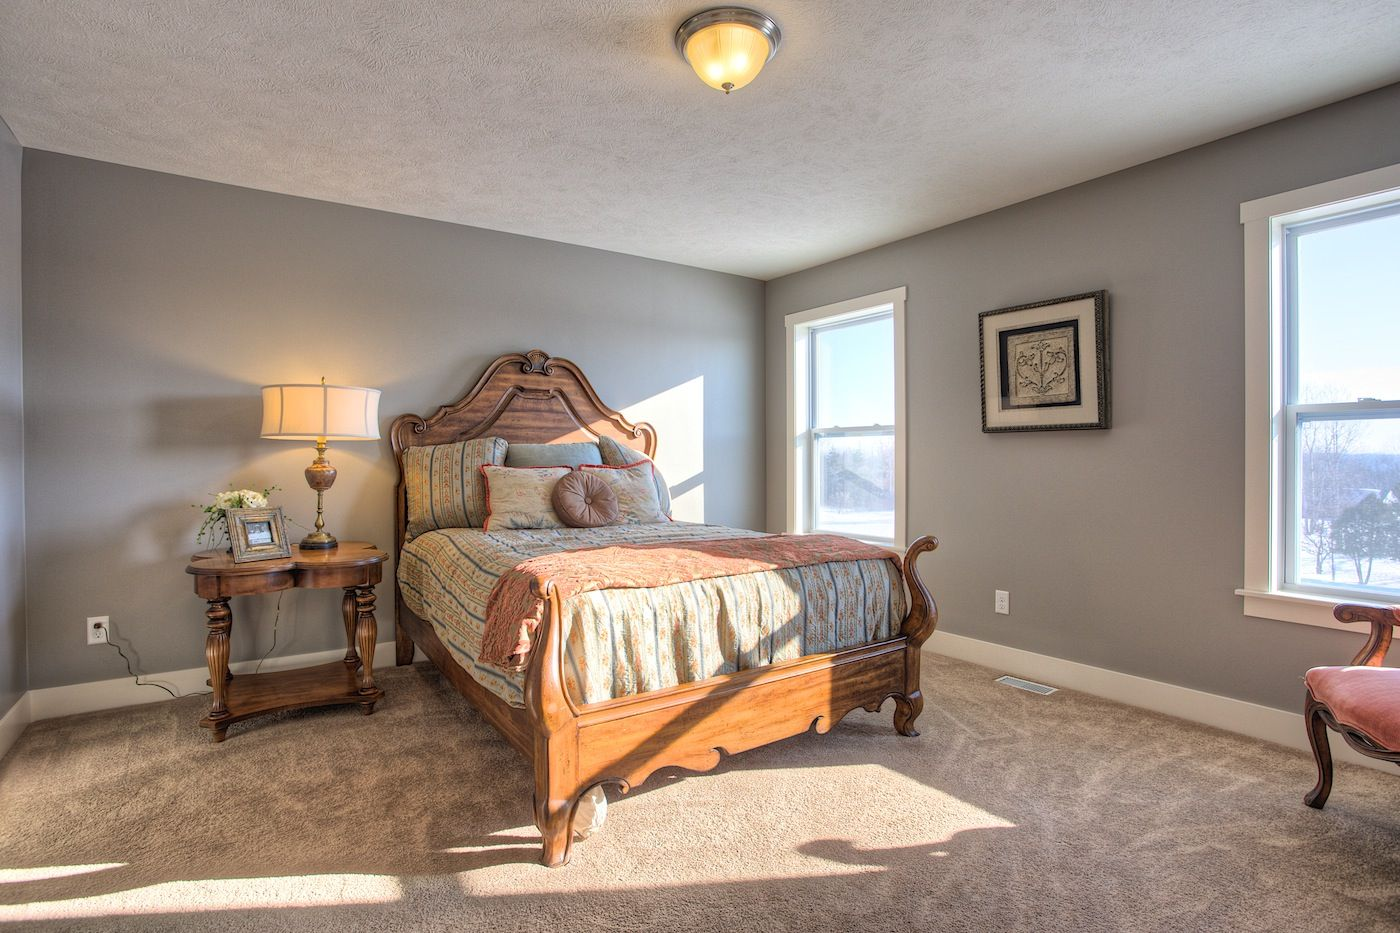 Bedroom featured in the Elements 1870 By Allen Edwin Homes in South Bend, IN